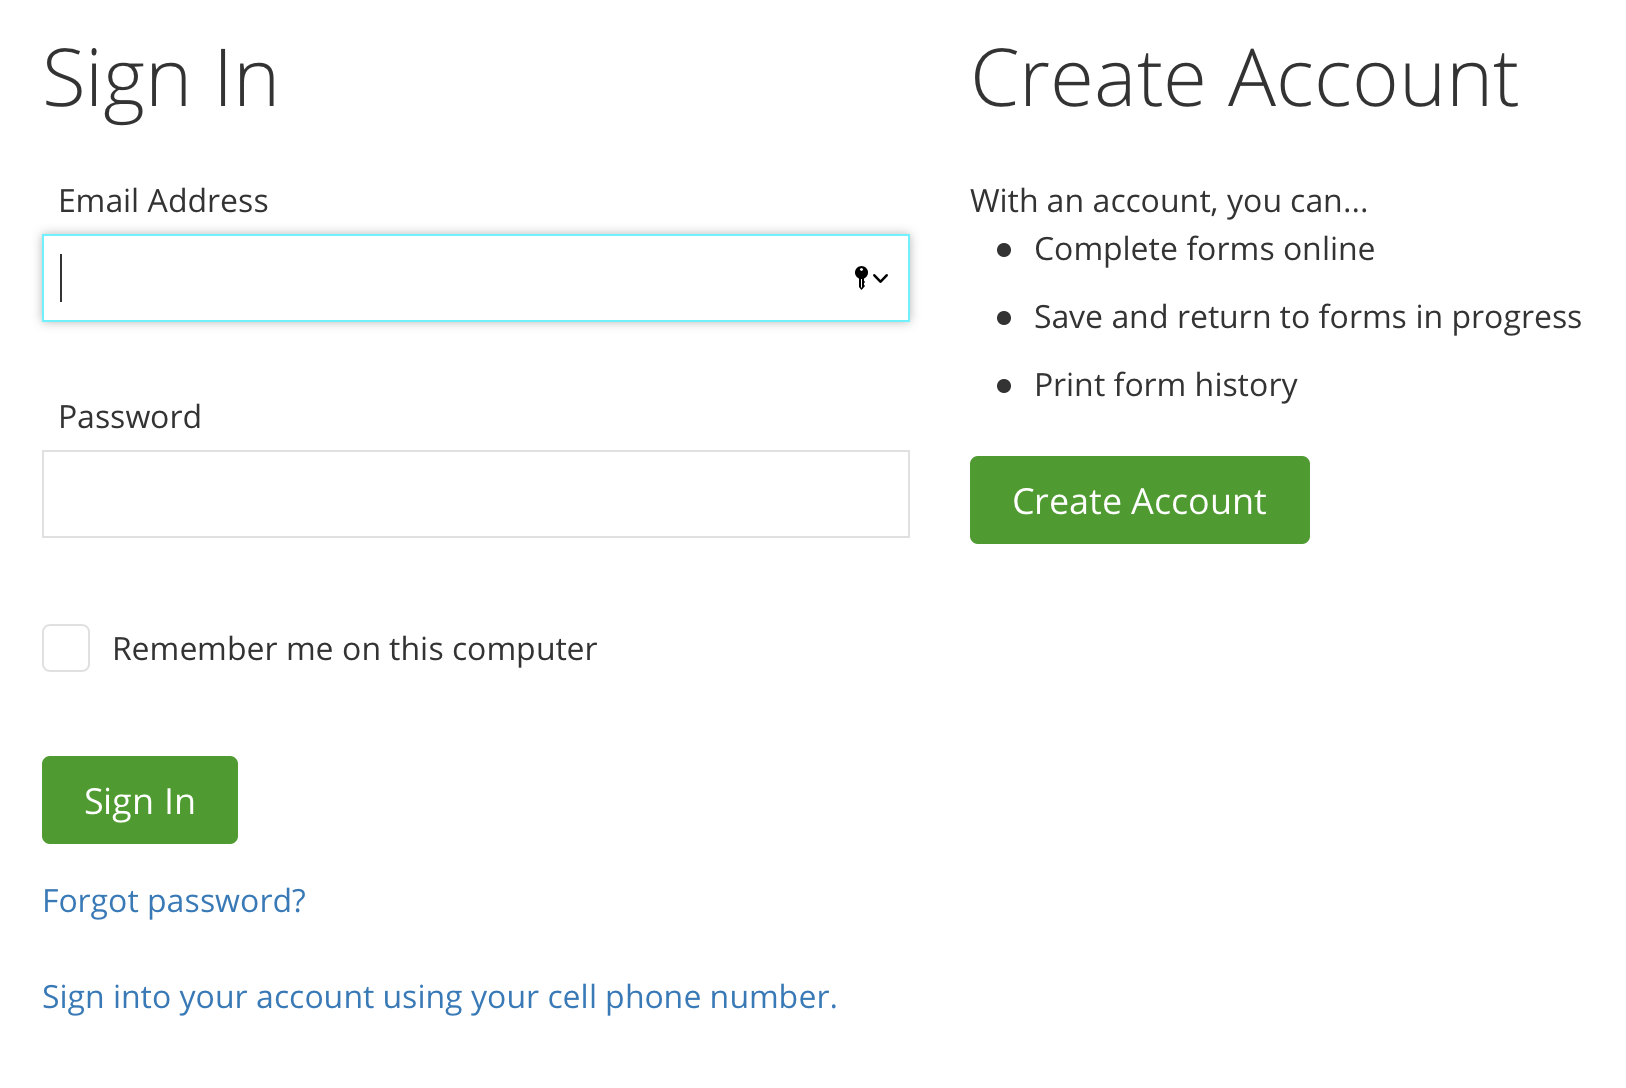 Account Creation Page